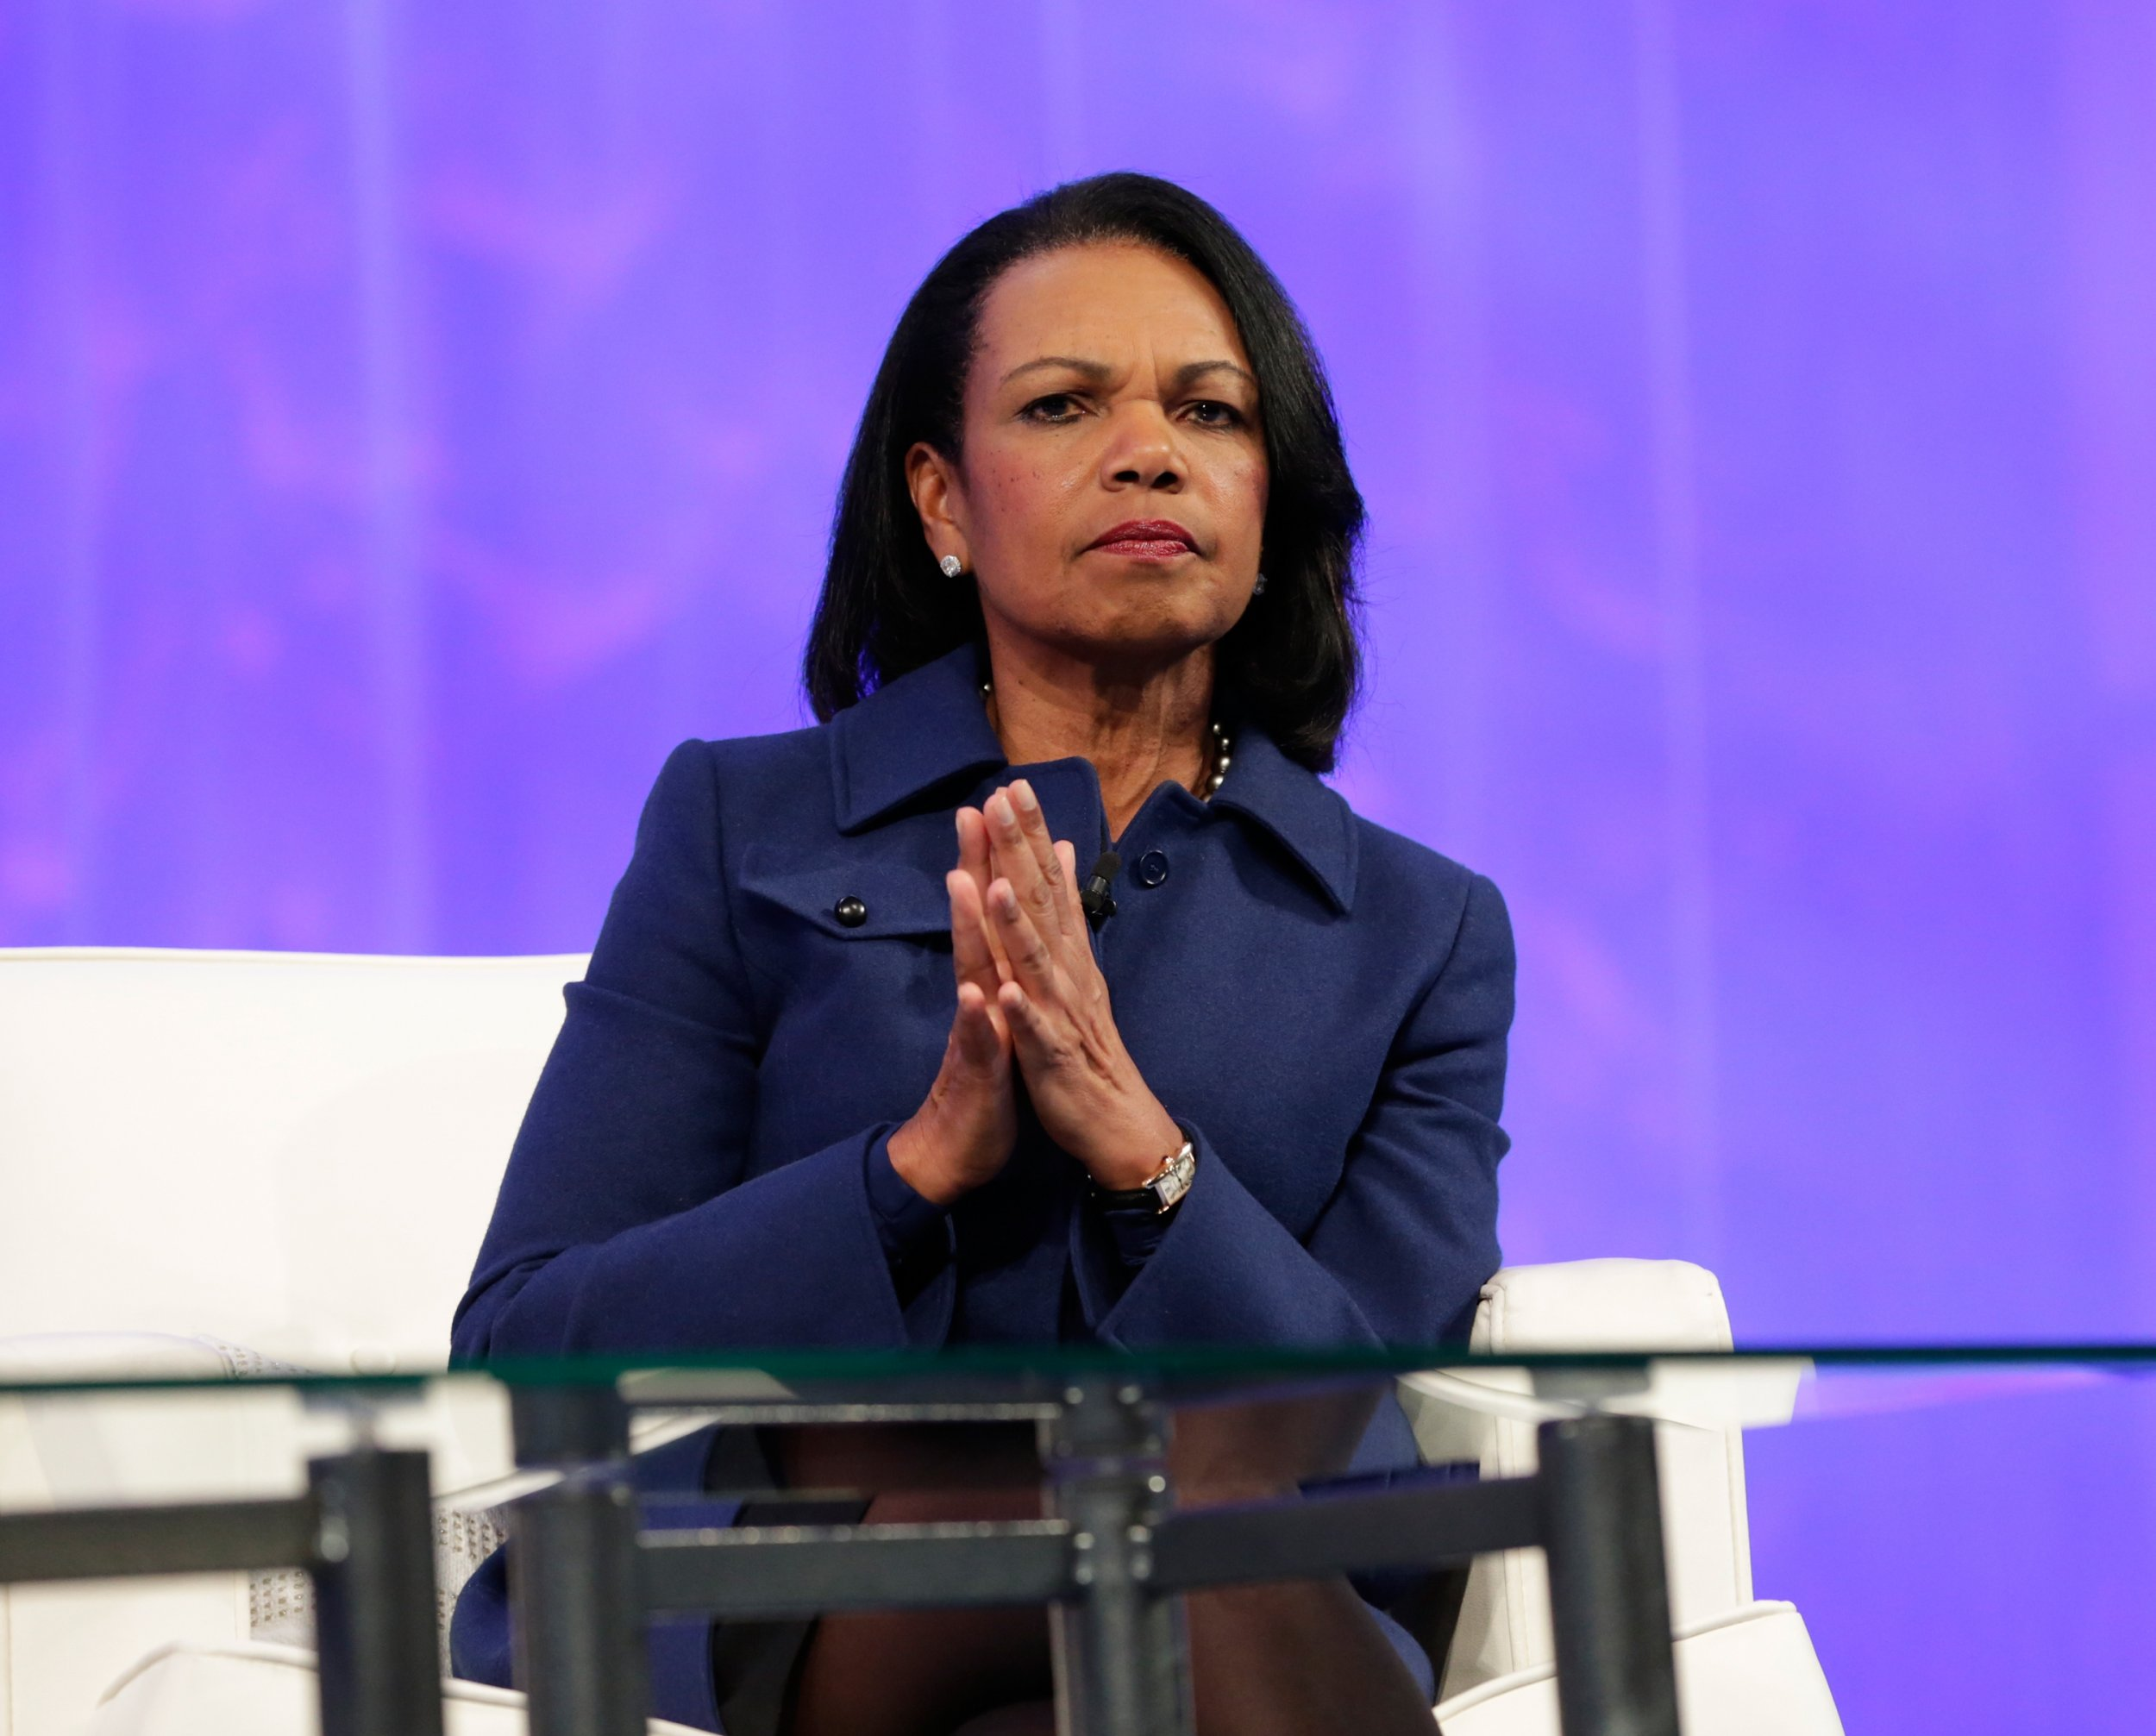 condoleezza rice university at buffalo young democratic american socialists torturer war criminal